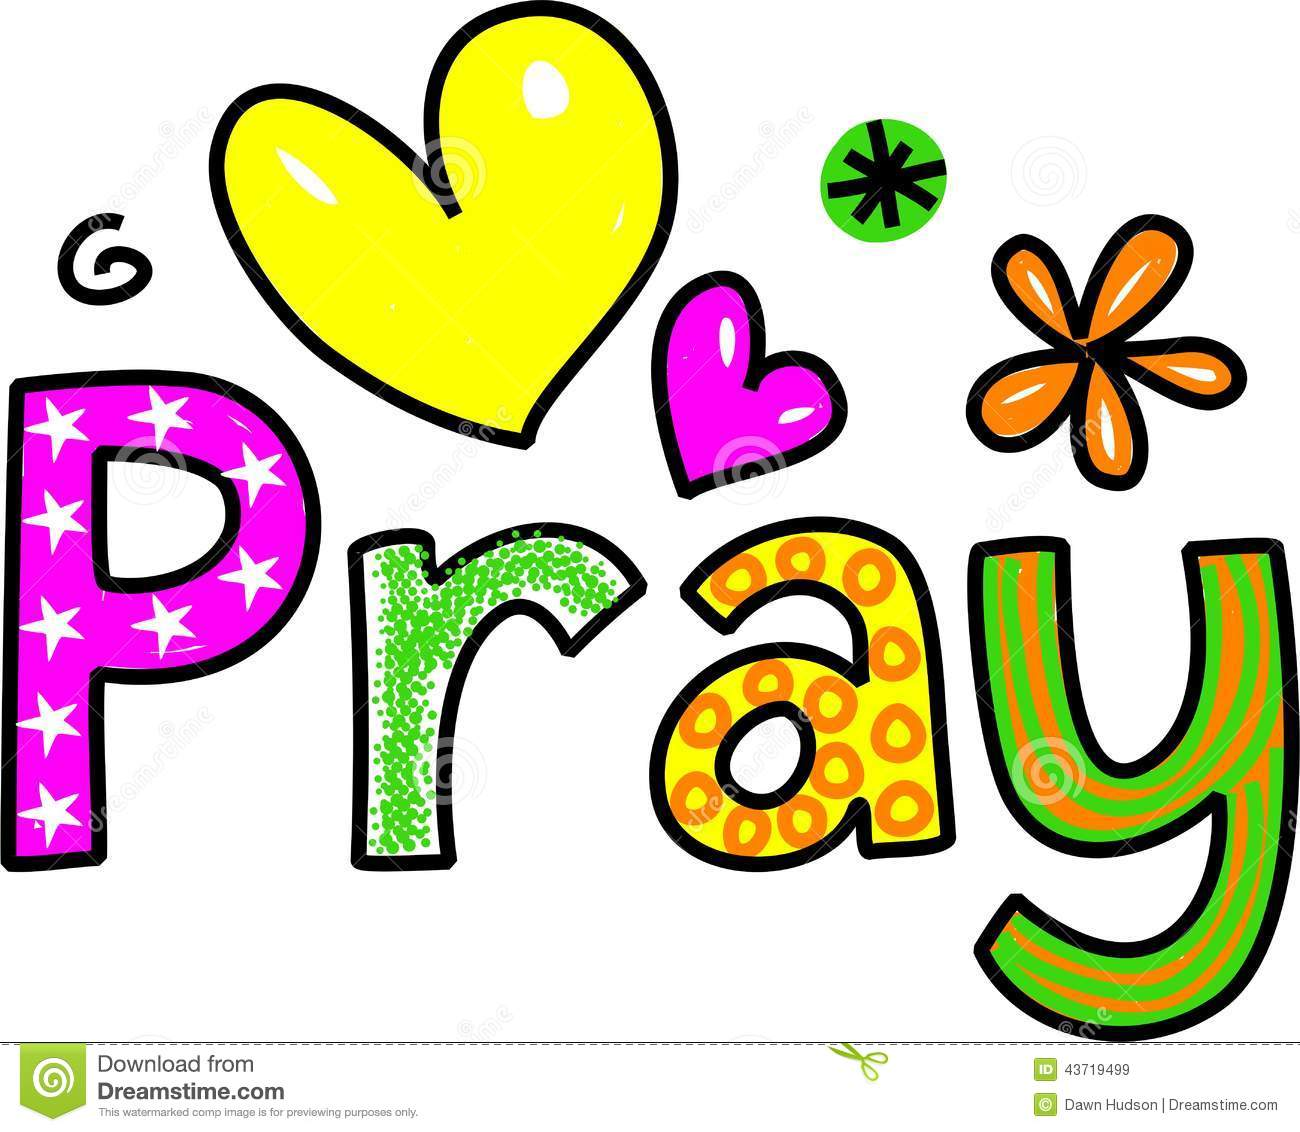 Kids prayer clipart graphic black and white download Praying Hands Clipart Bible | Free download best Praying ... graphic black and white download